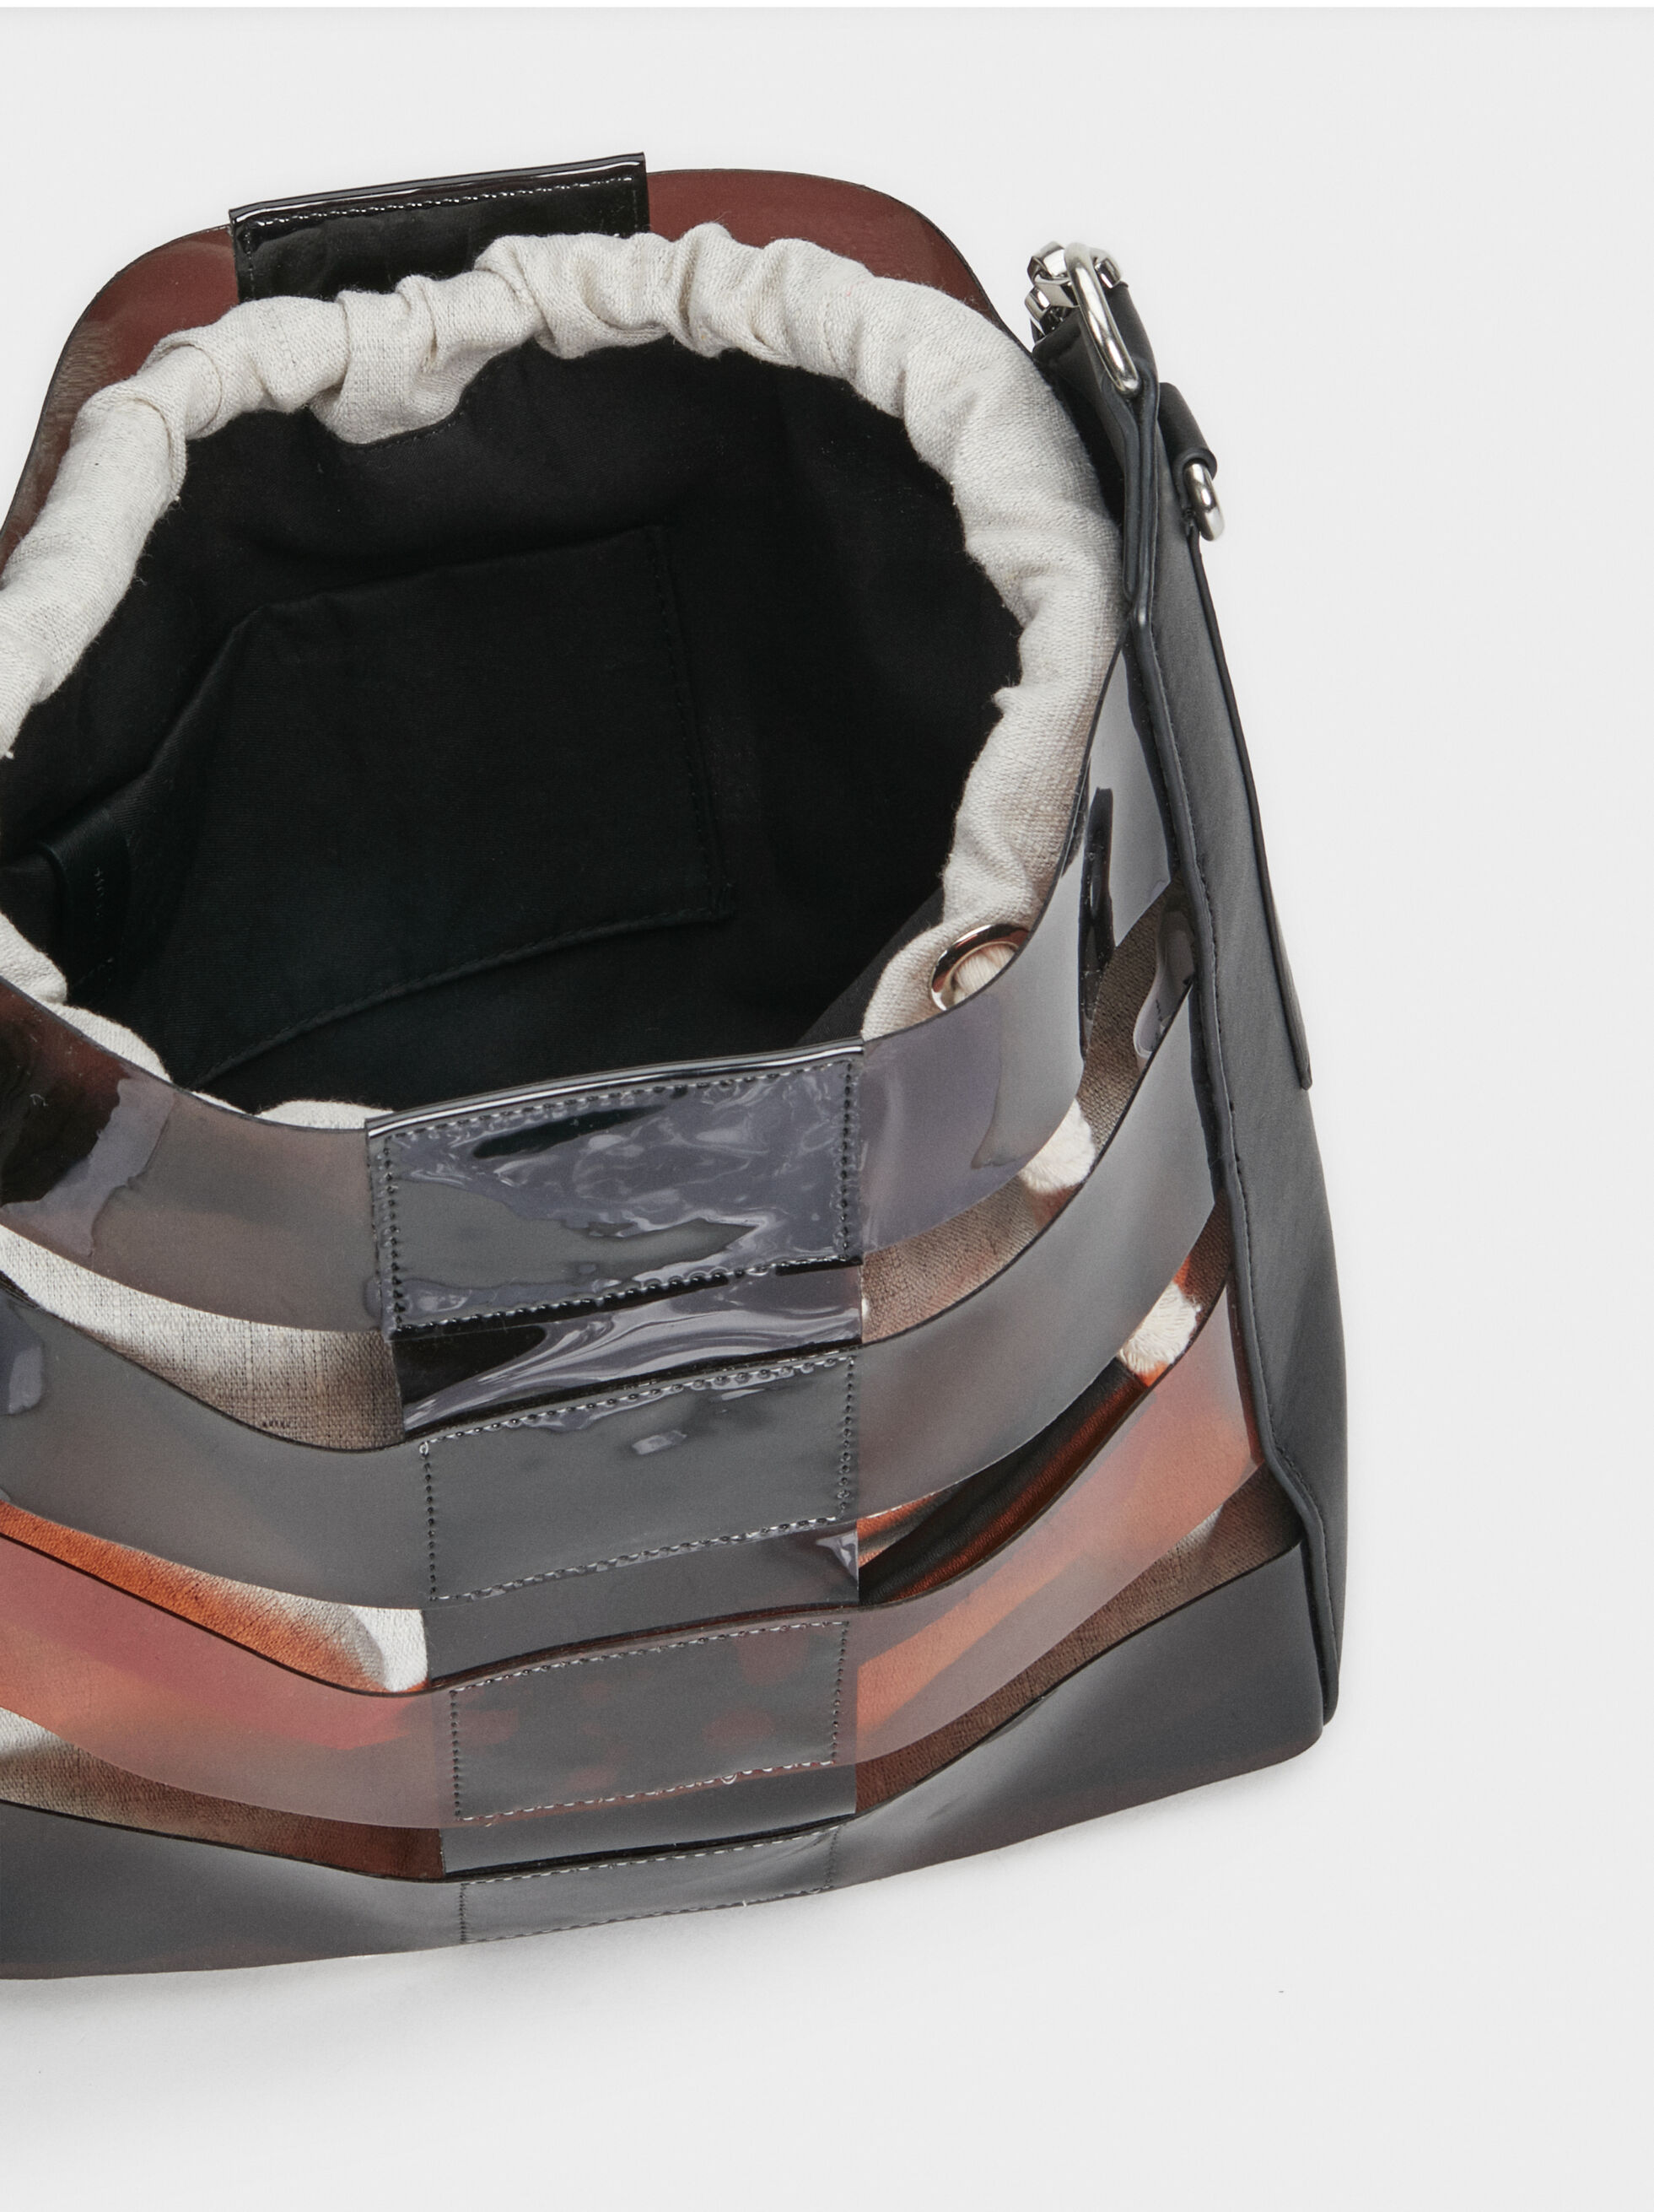 Vinyl Bucket Bag, Black, hi-res